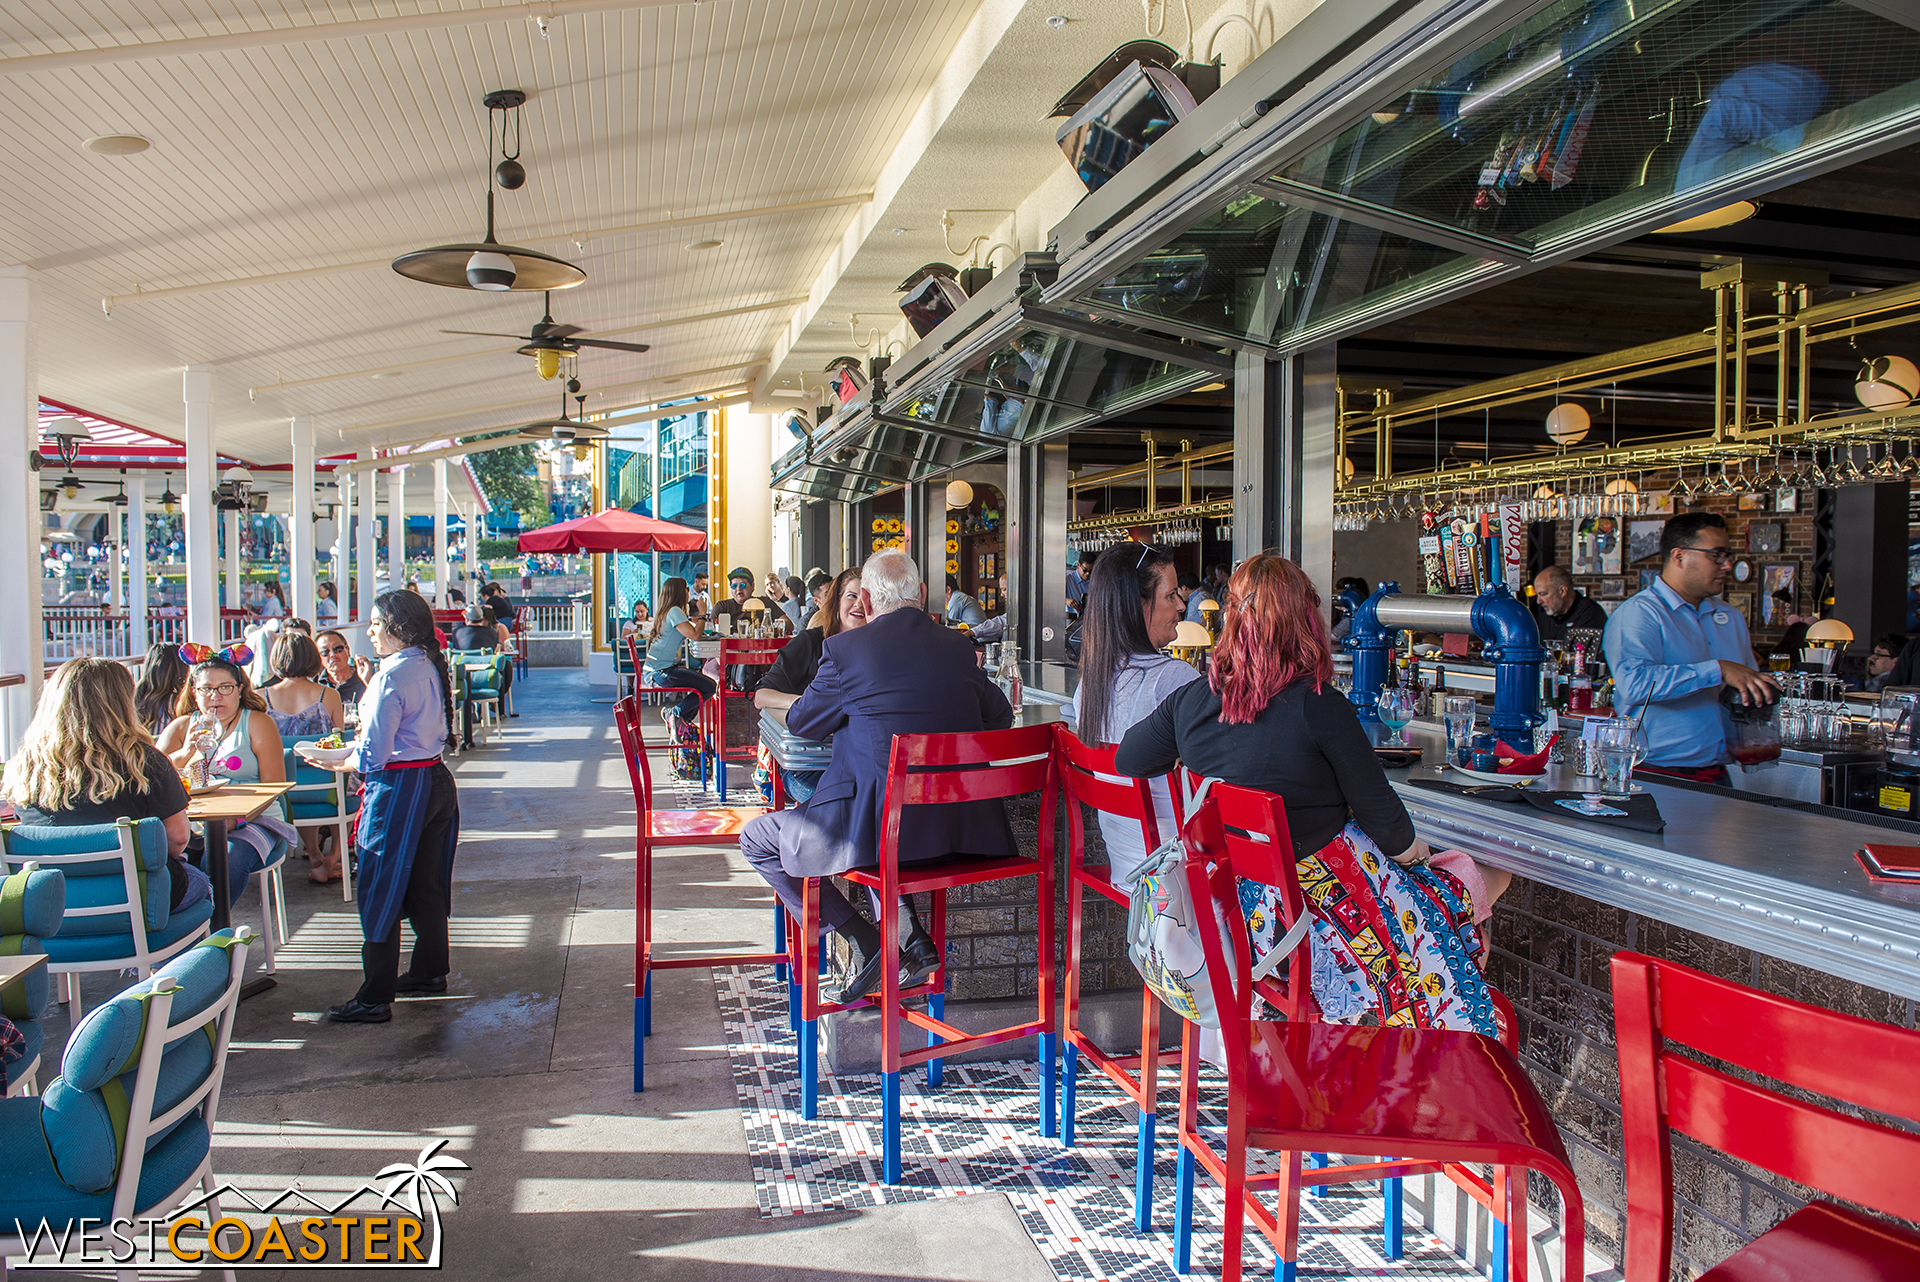 On the outside, these bifolding counter windows open up the bar to serve exterior patrons.